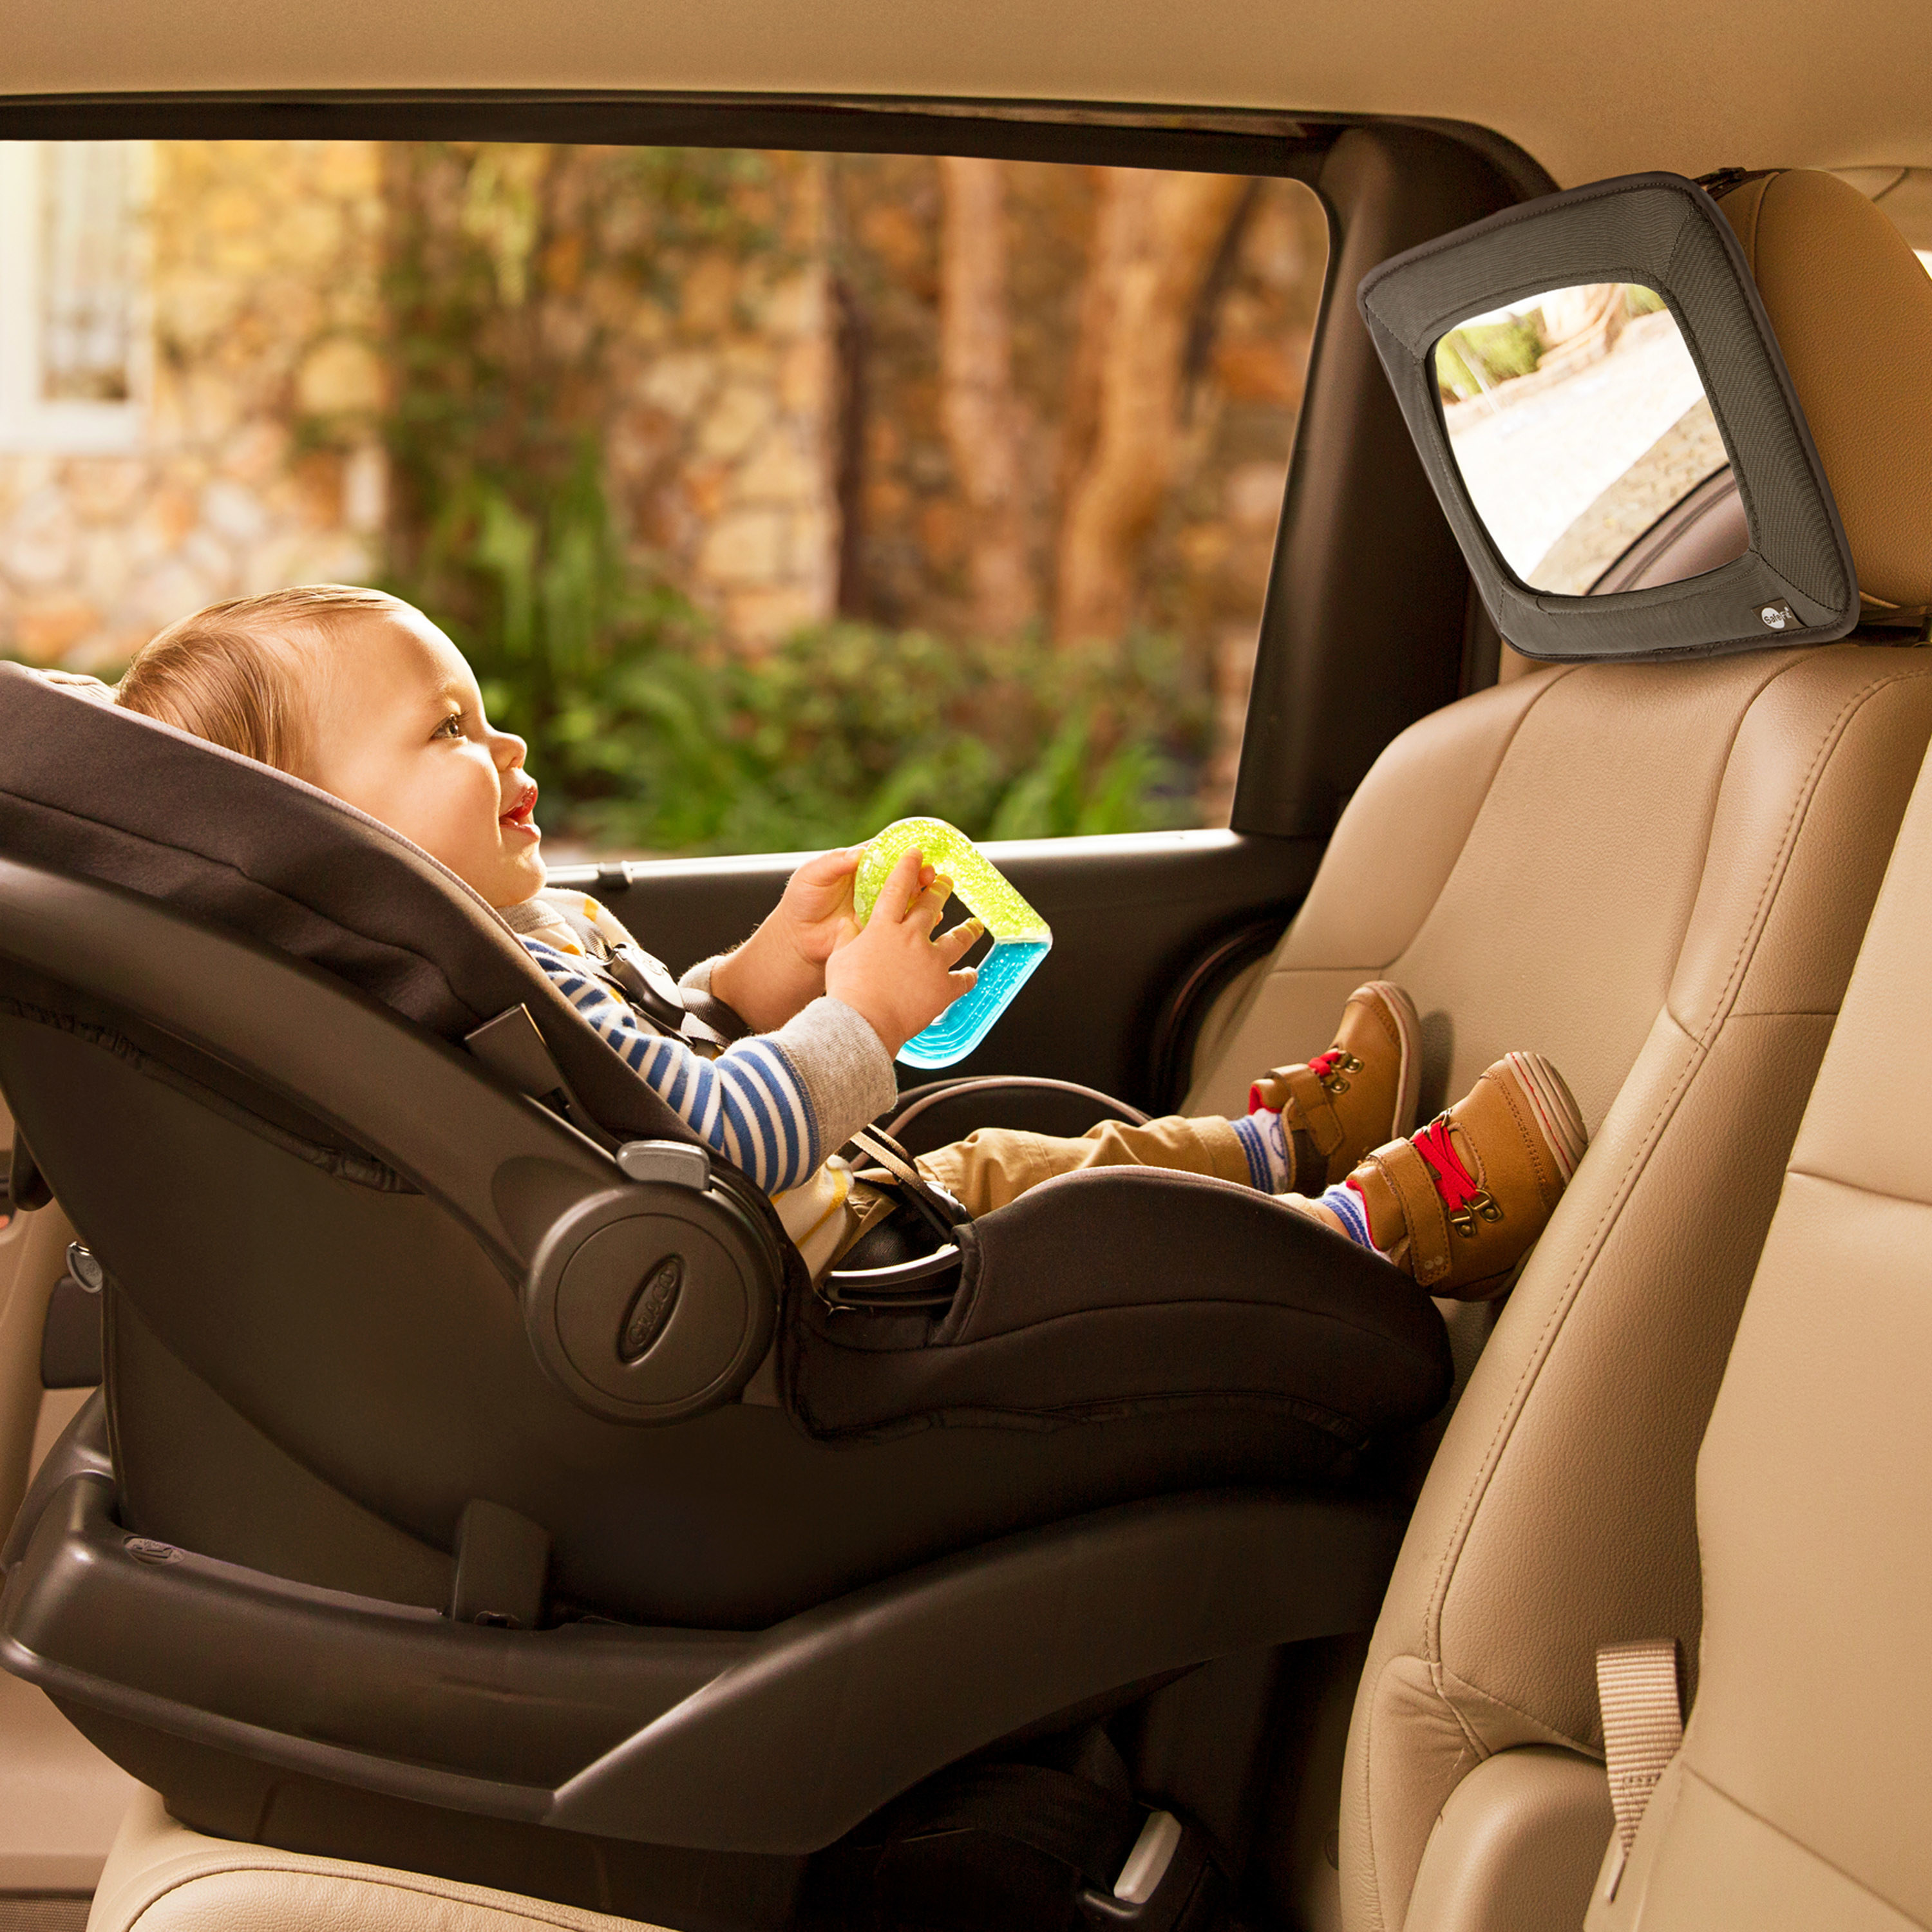 baby looking into a backseat baby car mirror